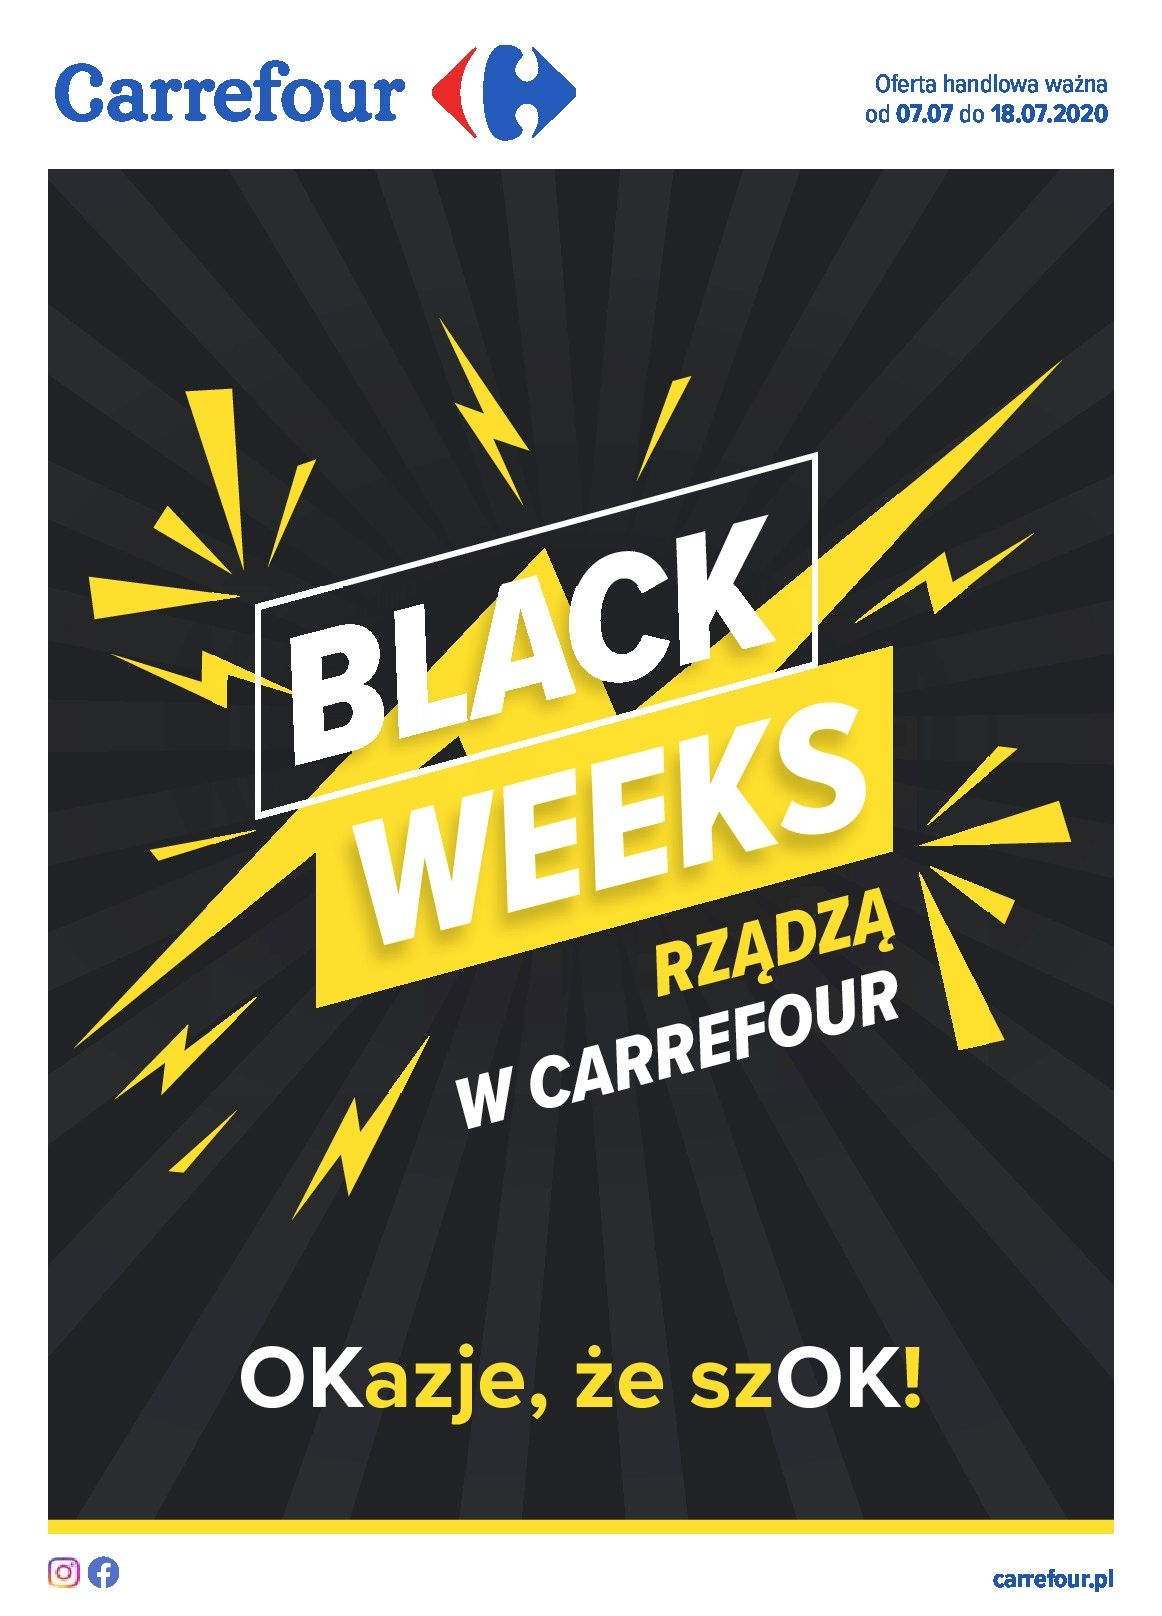 Gazetka Carrefour Black Weeks ważna od 7.07 do 18.07.2020